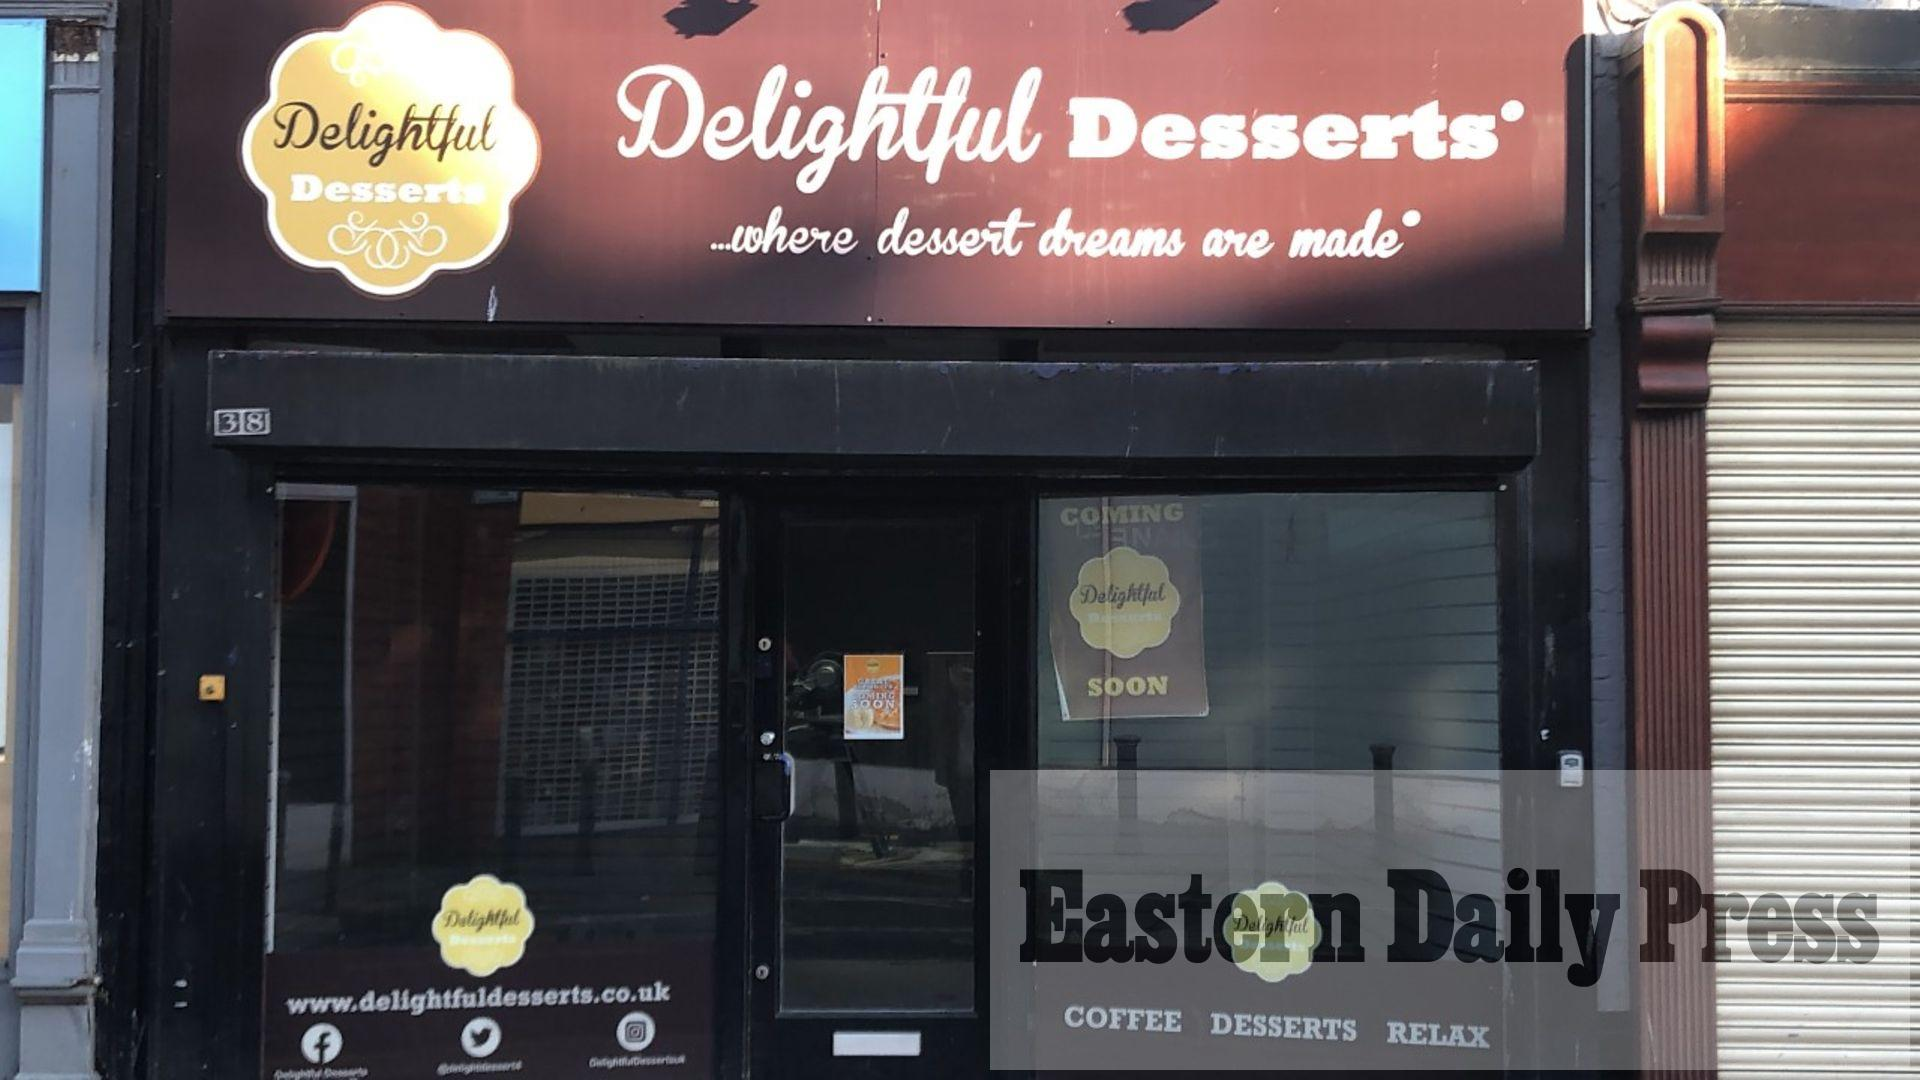 New dessert restaurant opens in Great Yarmouth